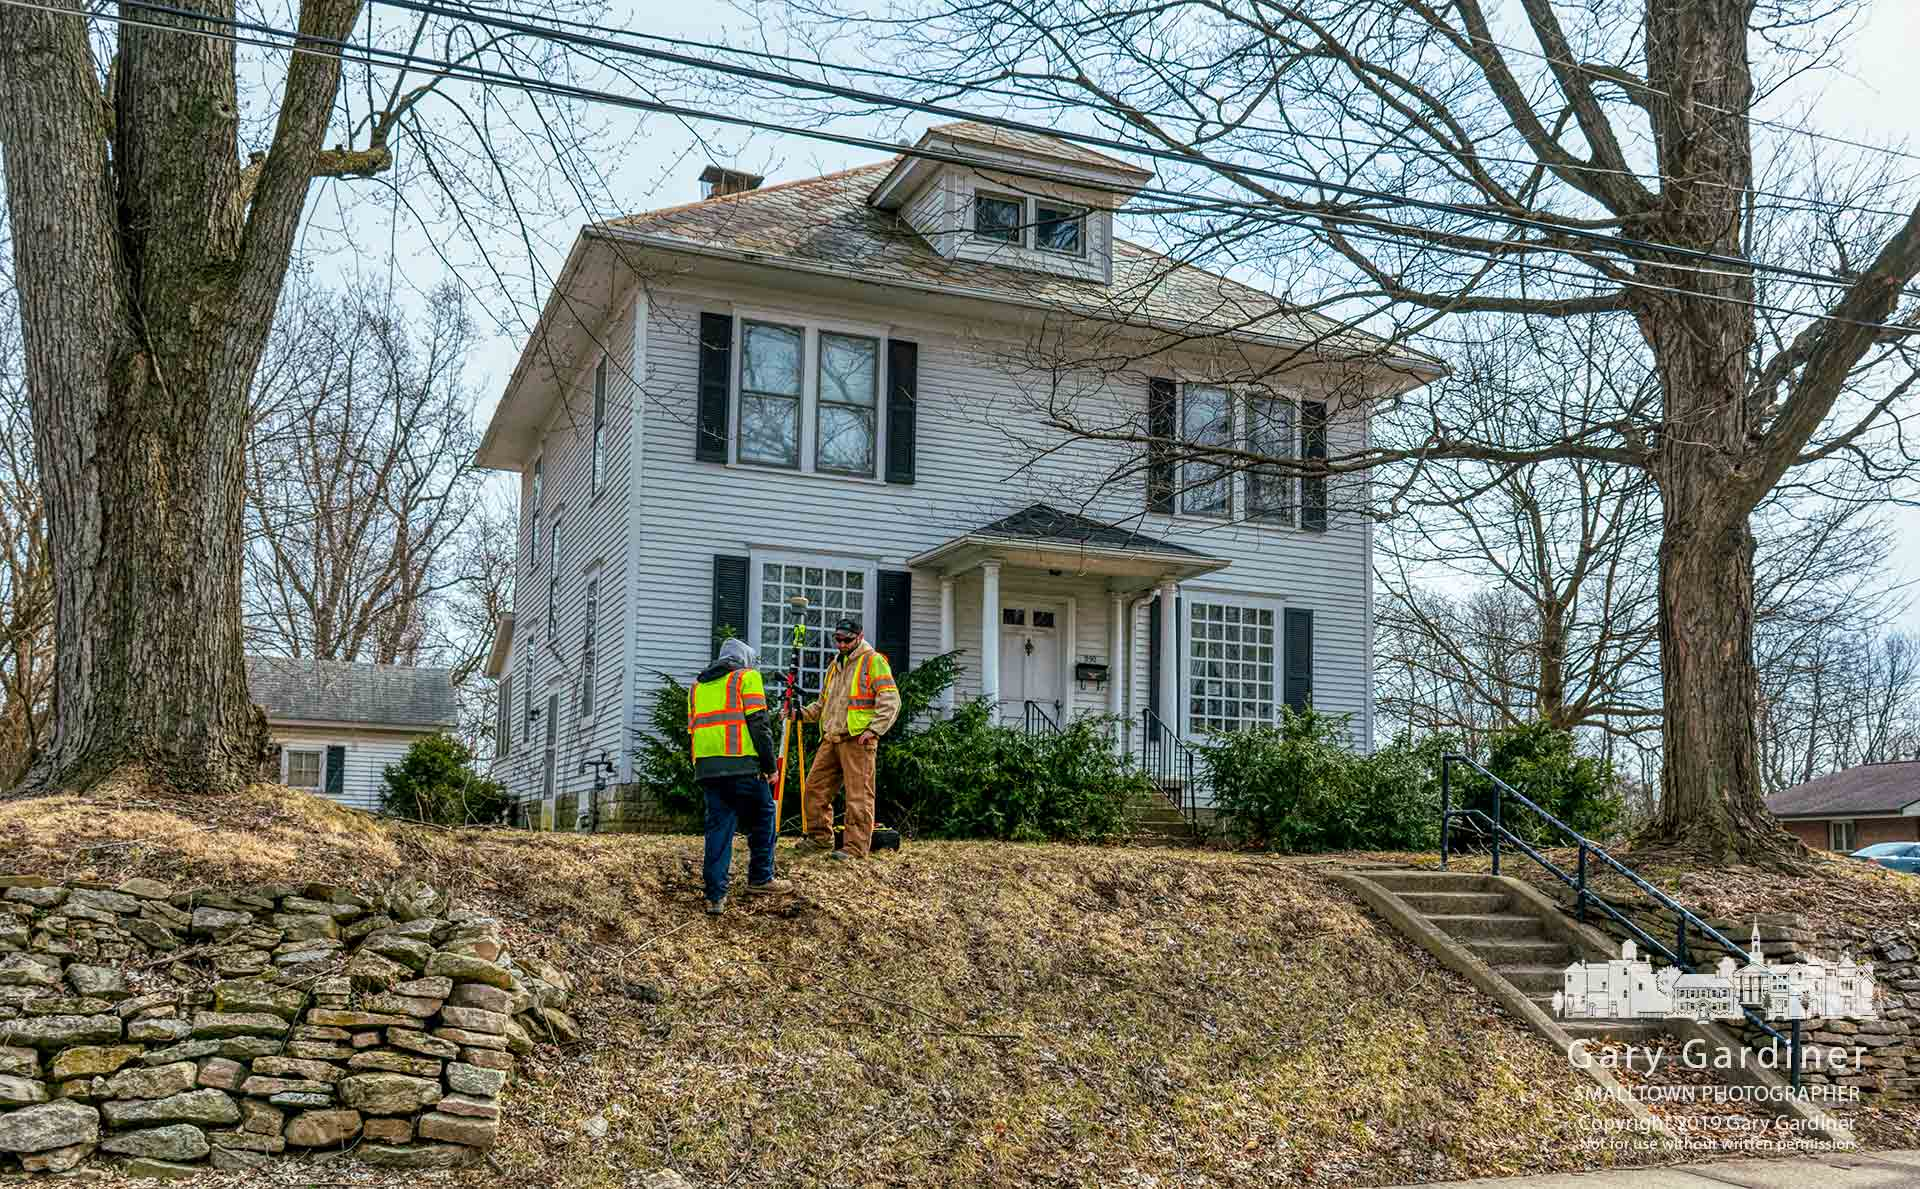 Surveyors mark the location of underground natural gas lines leading to two houses on South State Street where a developer was approved to demolish the buildings, clear the property of trees, and build an office and apartment complex. My Final Photo for March 20, 2019.